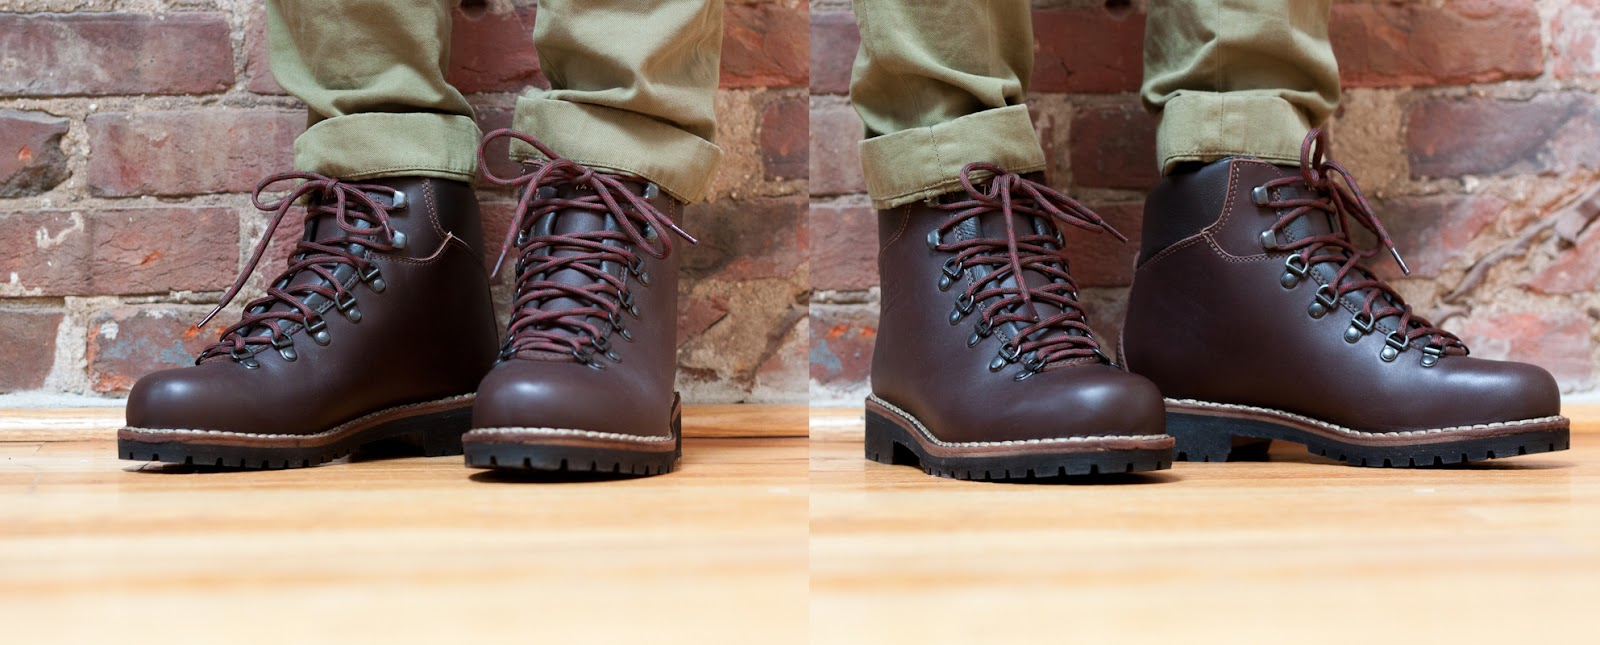 f868bd48d49 How Should Hiking Boots Fit - All The Important Things You Need To ...